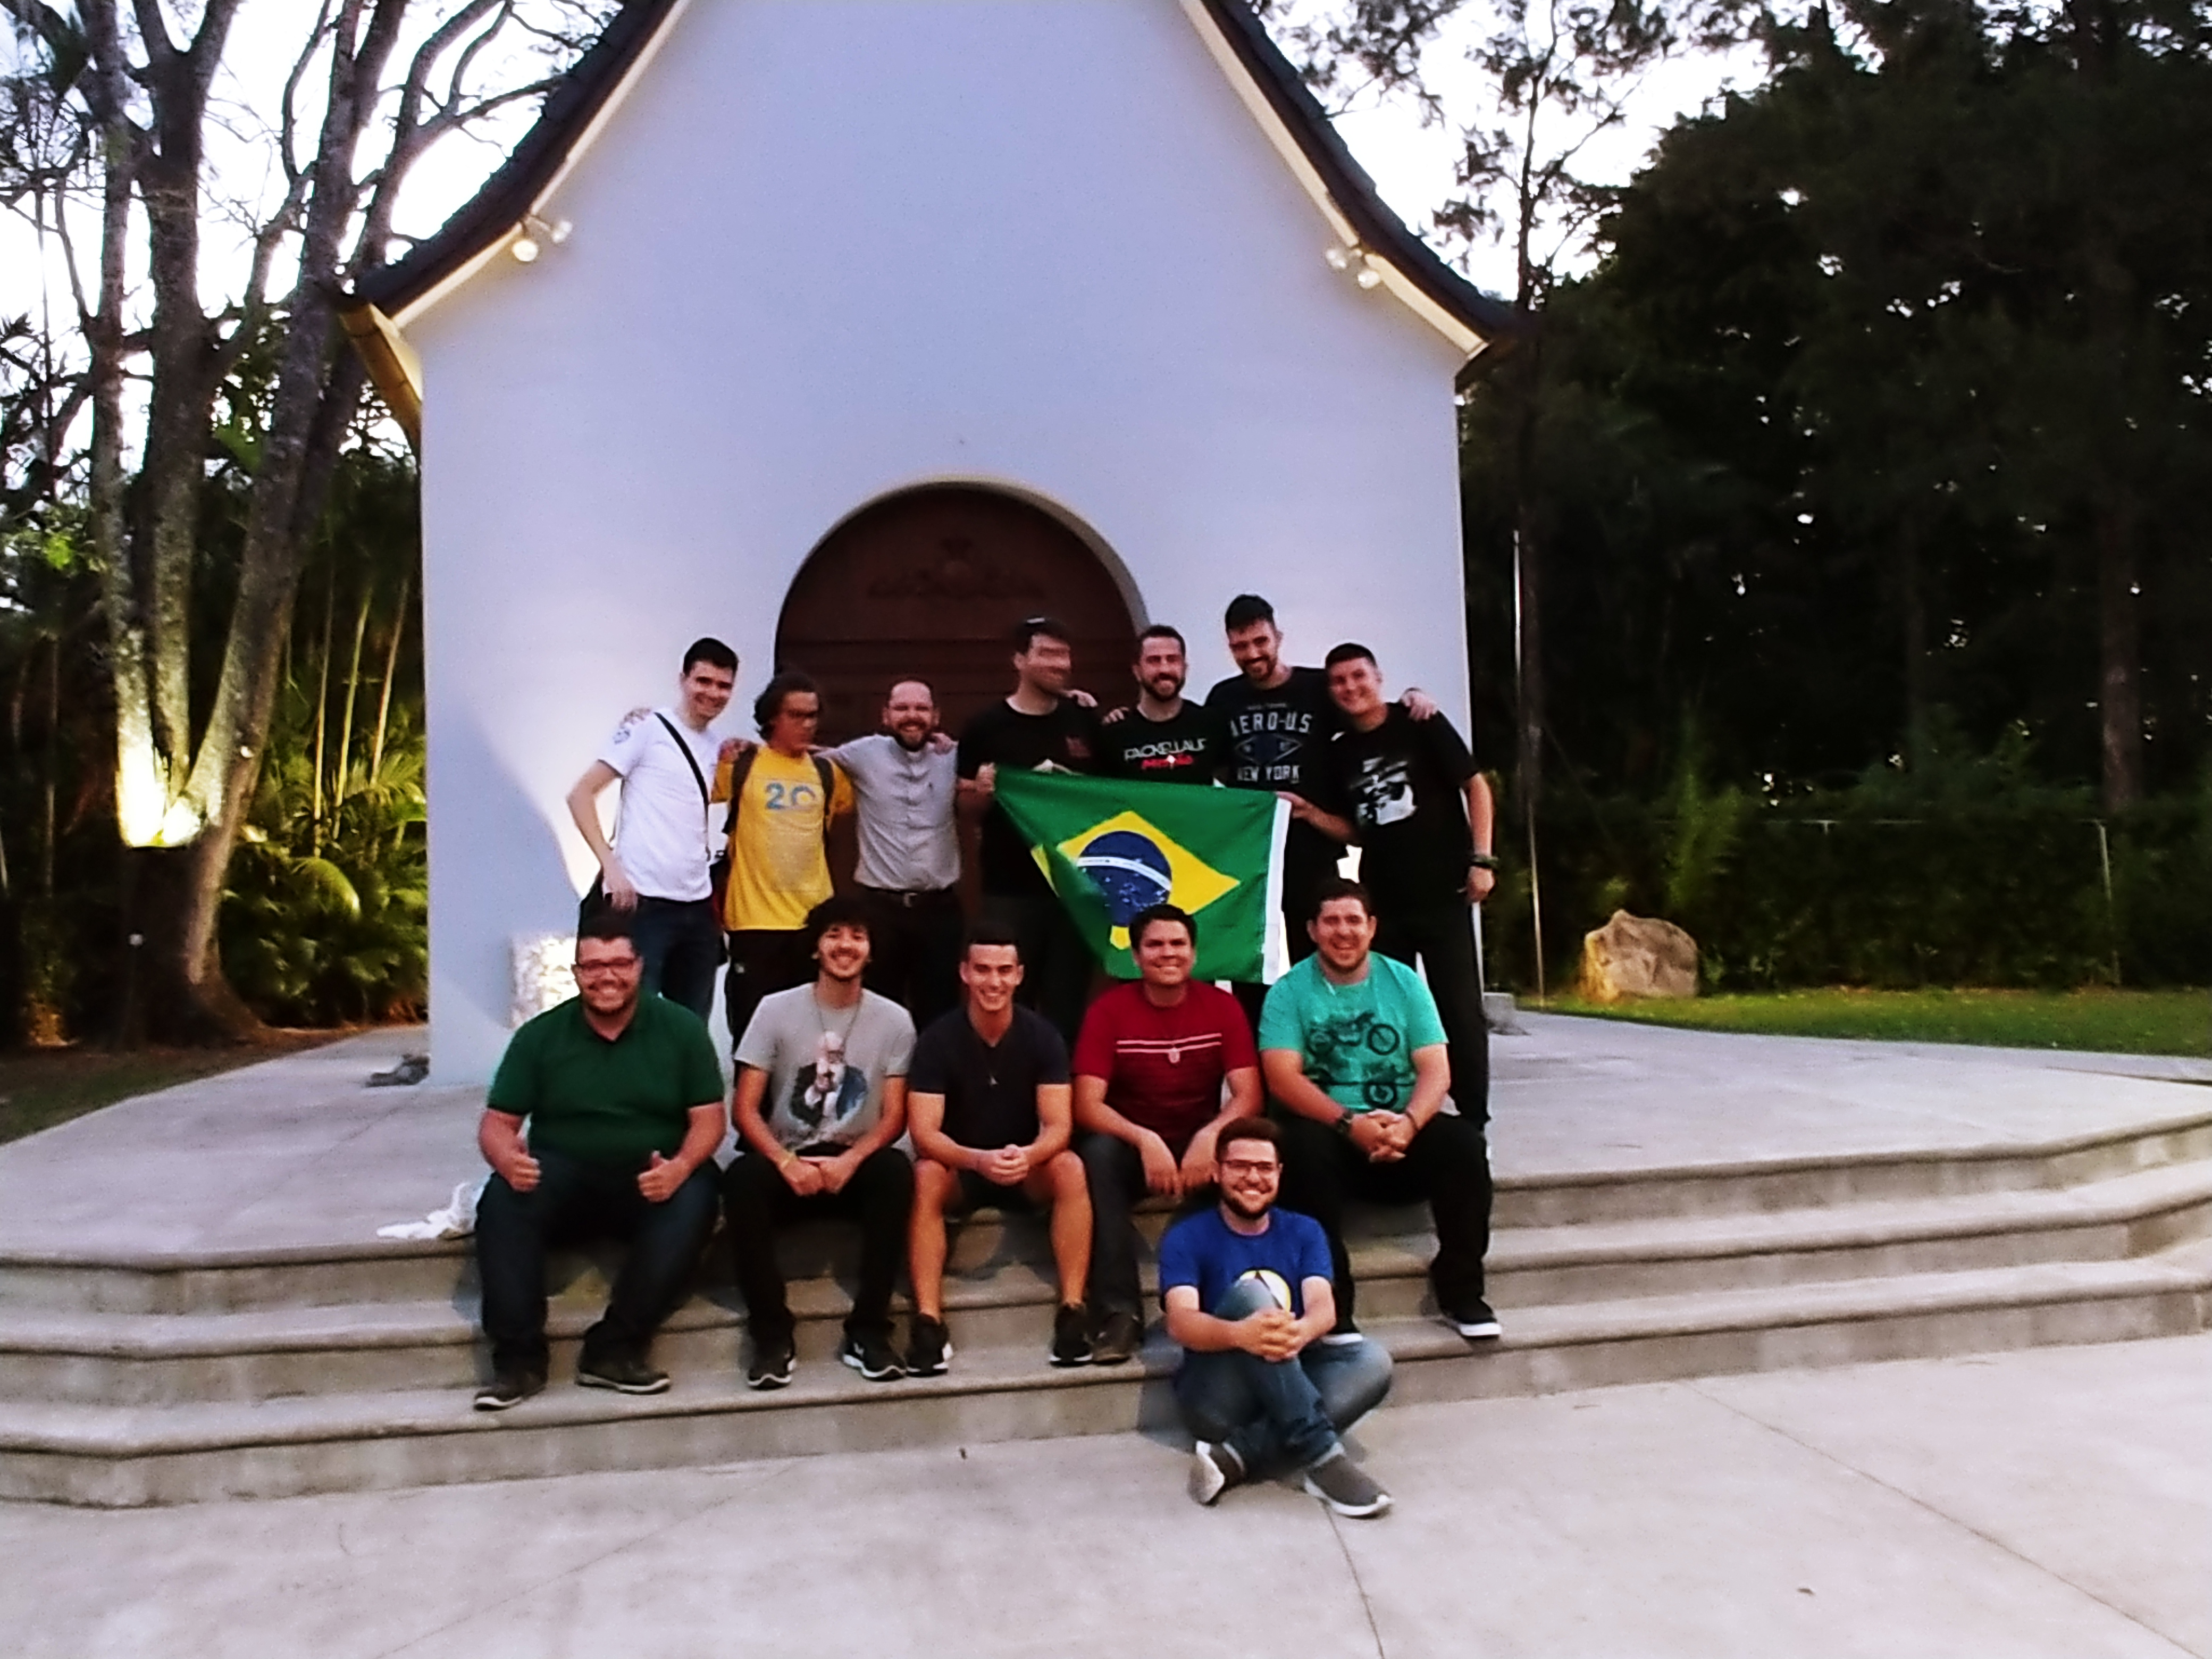 They have arrived! Costa Rica's shrine welcomes the future of the